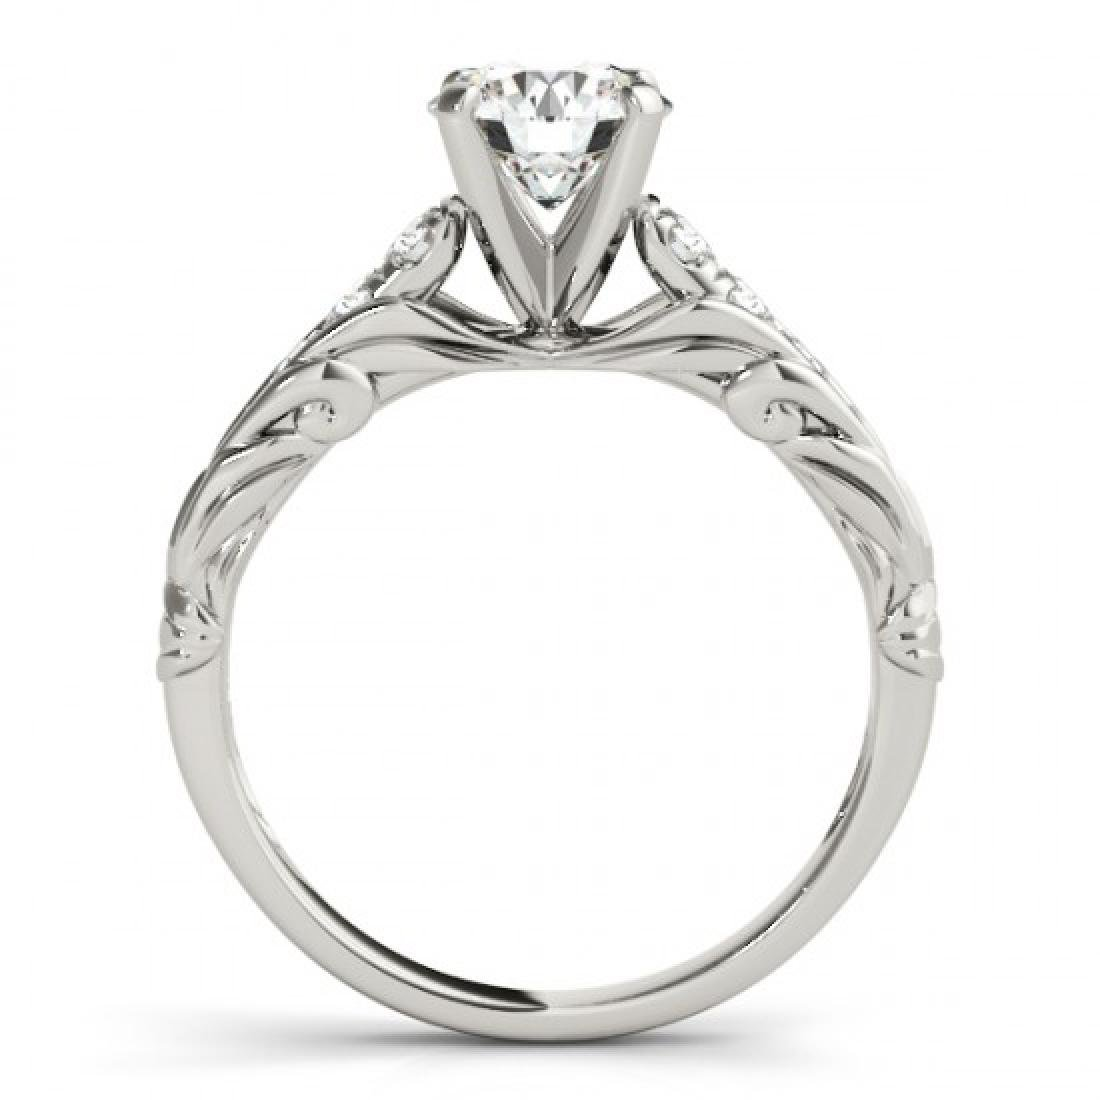 1.2 CTW Certified VS/SI Diamond Solitaire Ring 14K - 2